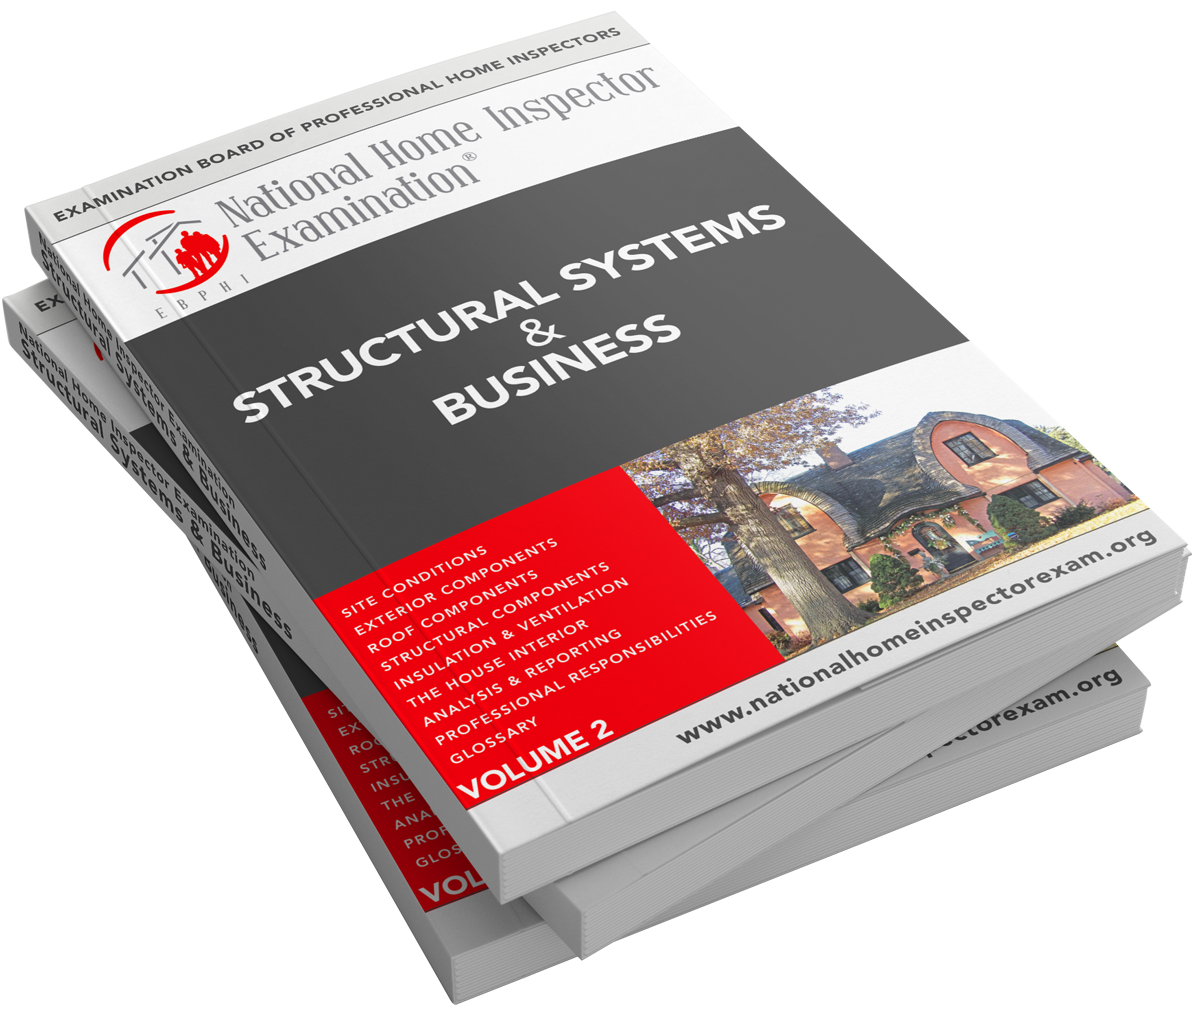 Structural and Business Manual